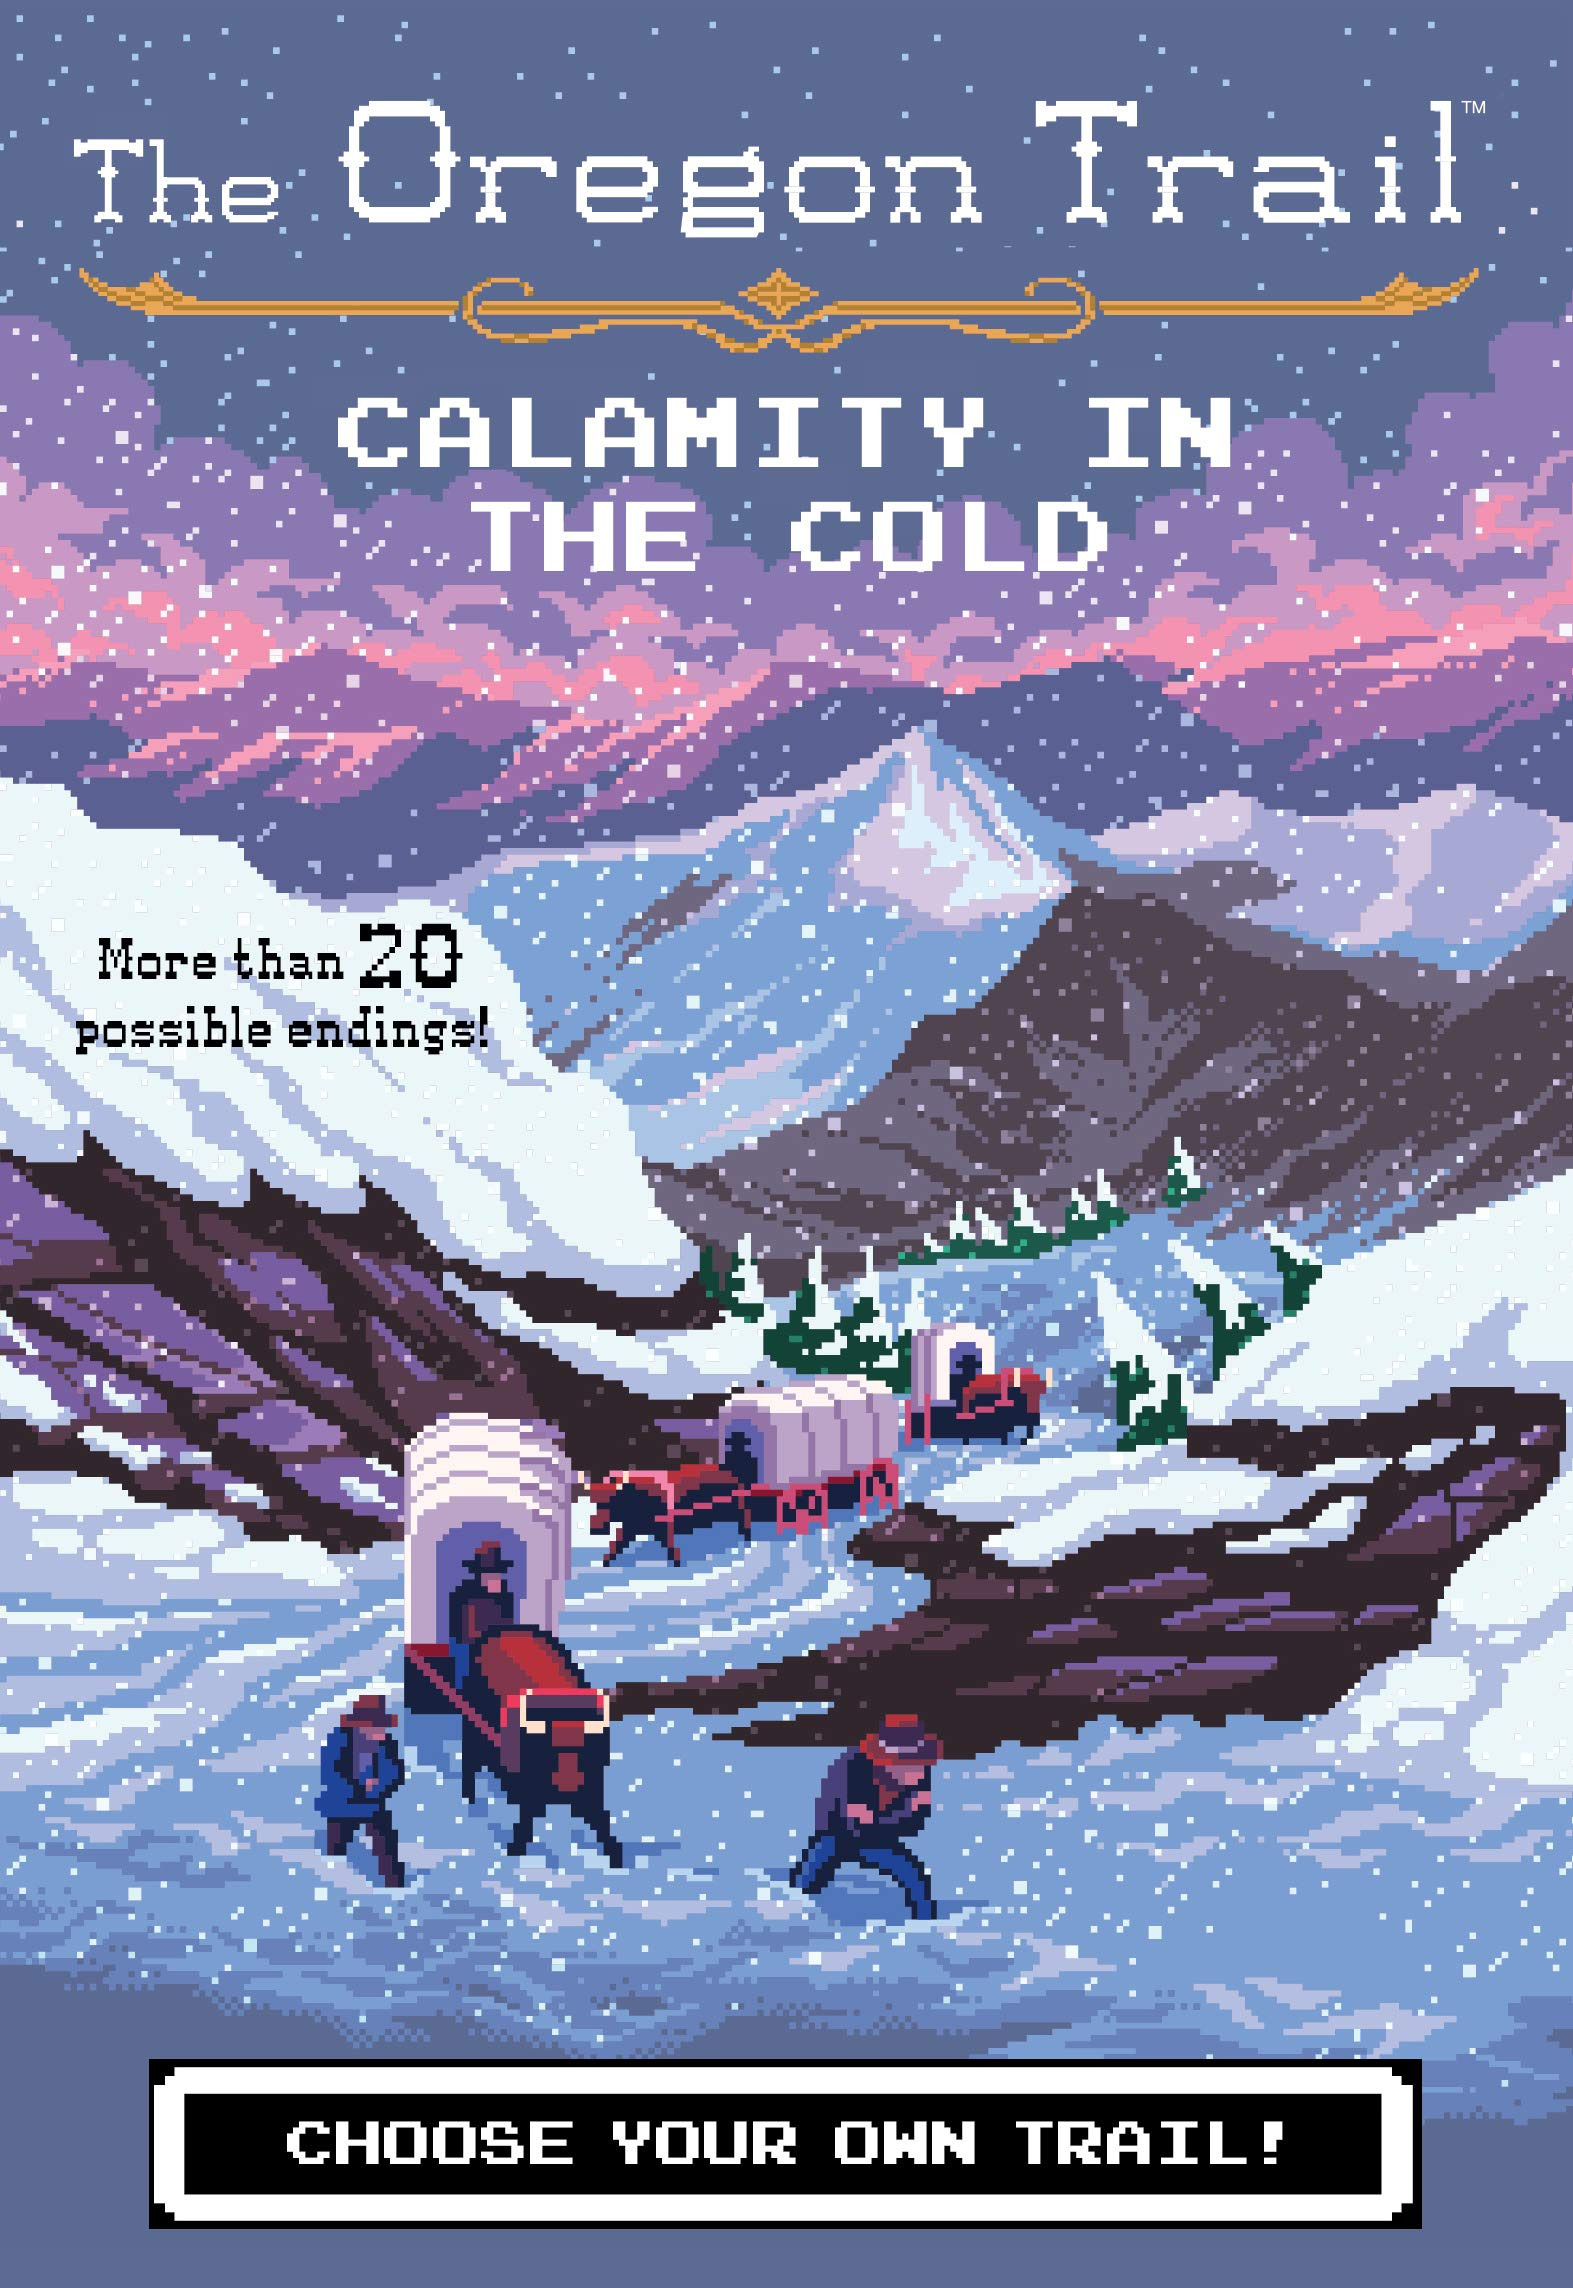 Calamity in the Cold (8) (The Oregon Trail)